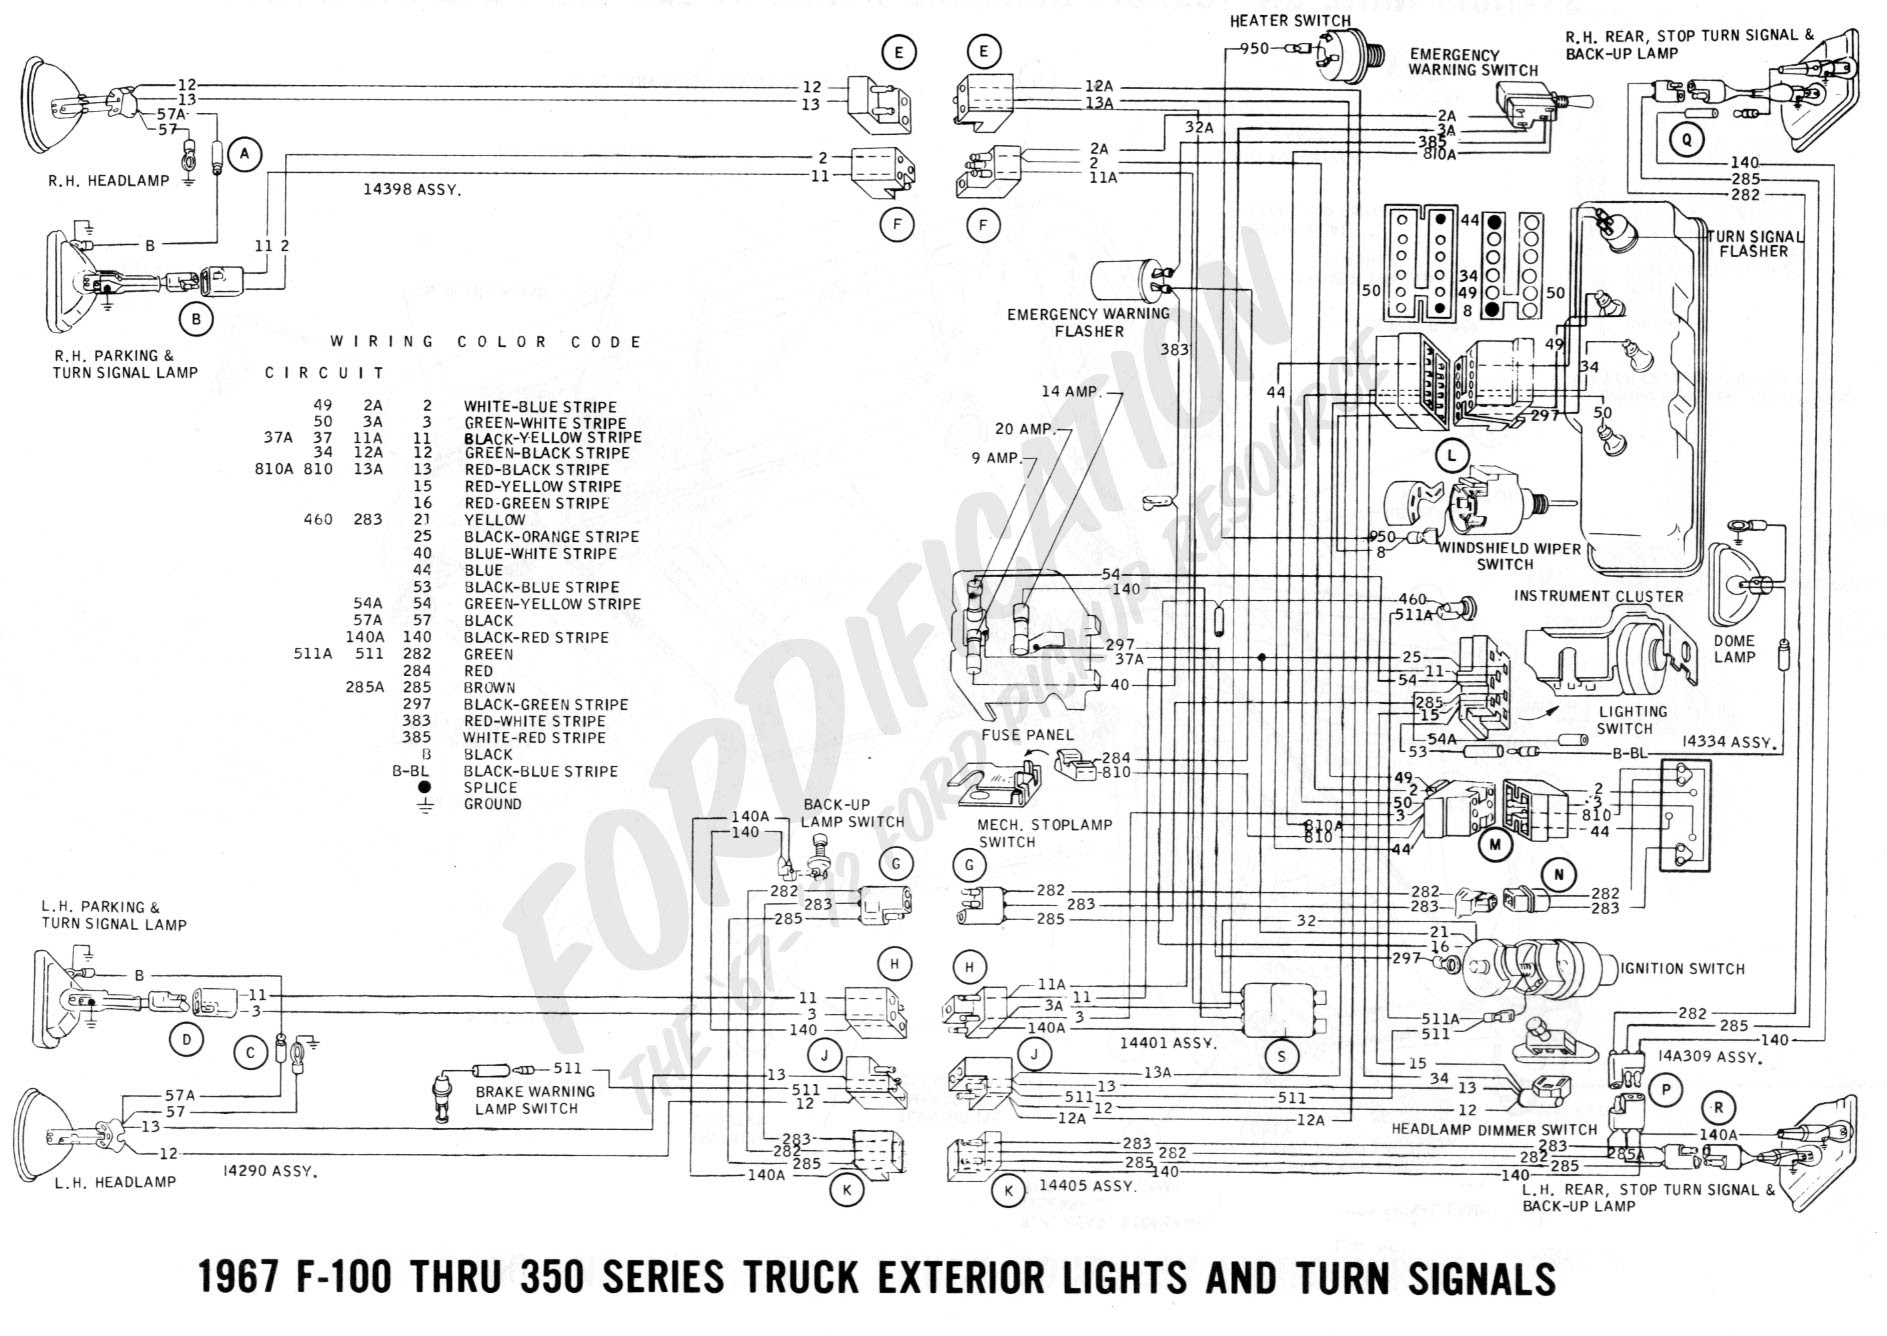 71 Ford F100 Wiring Diagram Wiring Diagram Altima B Altima B Musikami It